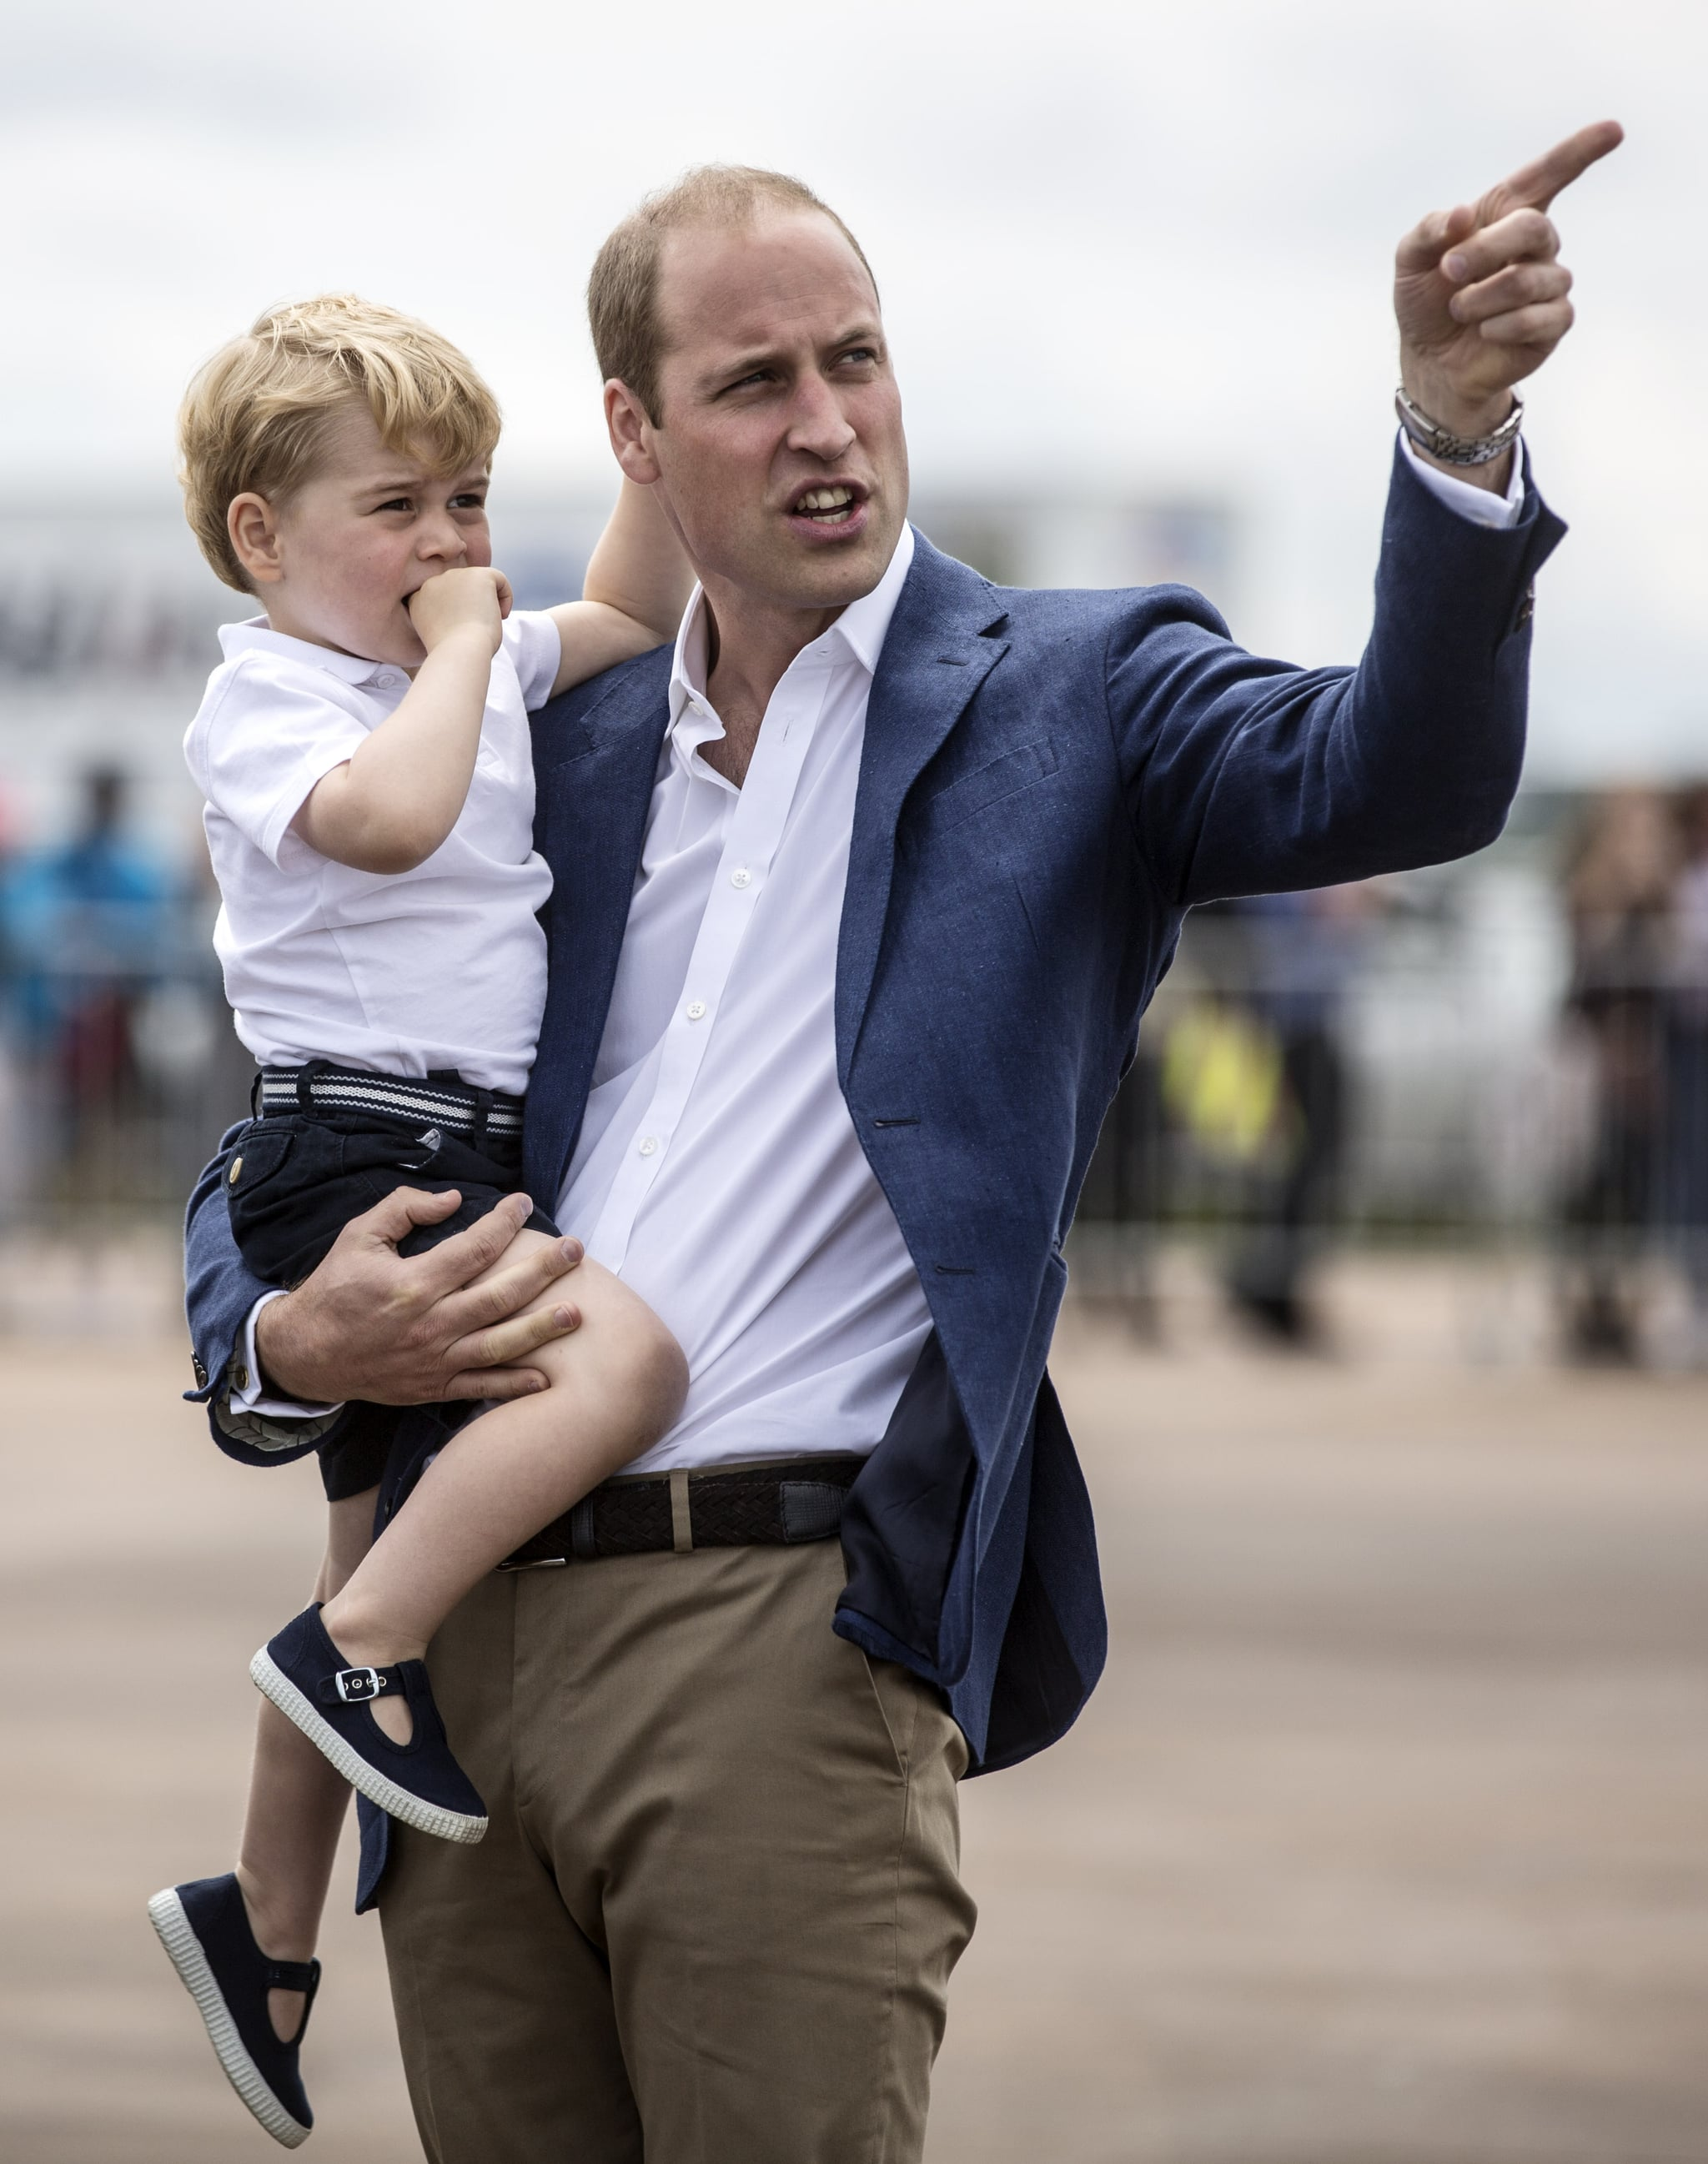 Britain's Prince George is carried by his father Prince William as they visit the Royal International Air Tattoo at RAF Fairford in western England, on July 8, 2016. / AFP / POOL / RICHARD POHLE        (Photo credit should read RICHARD POHLE/AFP/Getty Images)